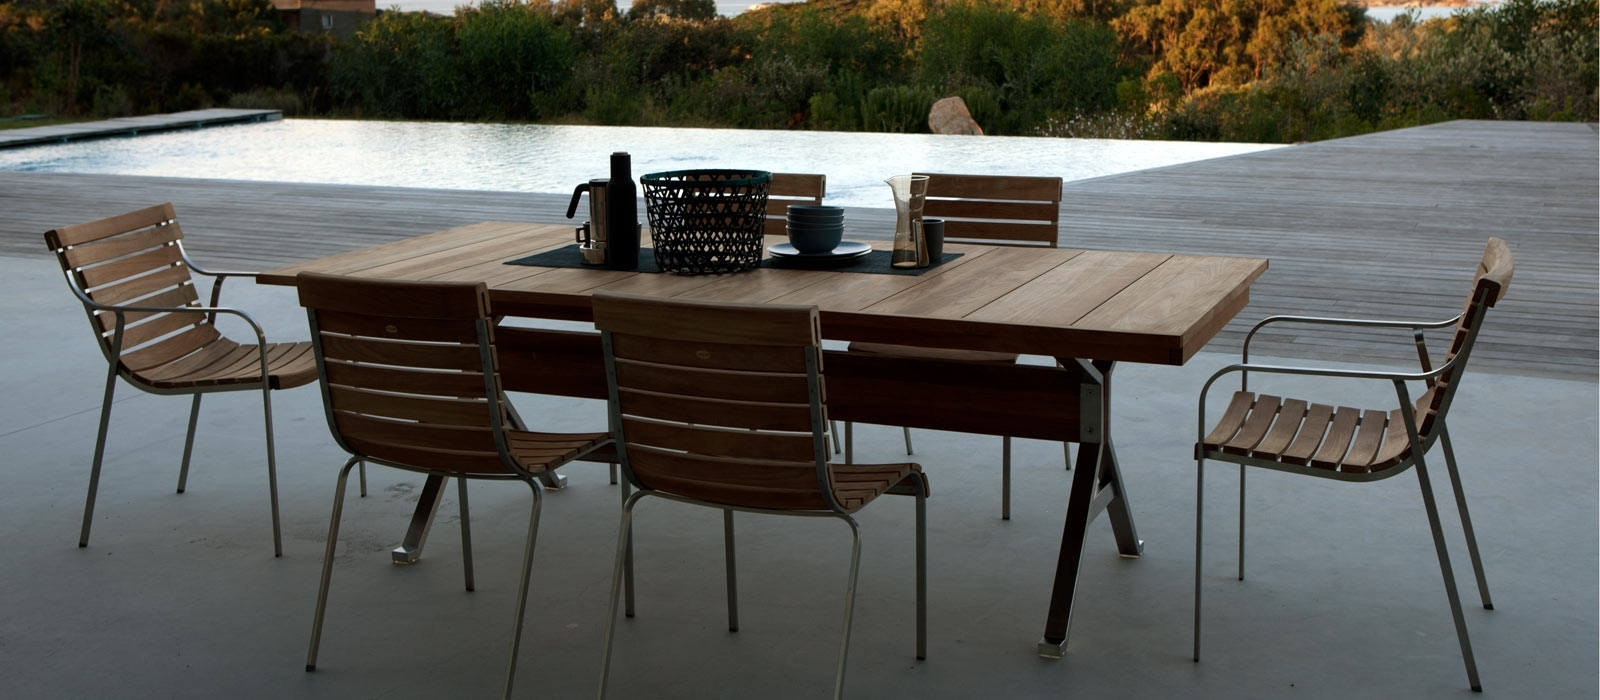 Designer Garden Tables: Wooden, Metal & Teakunopiù With Regard To Preferred Garden Dining Tables (Gallery 8 of 25)